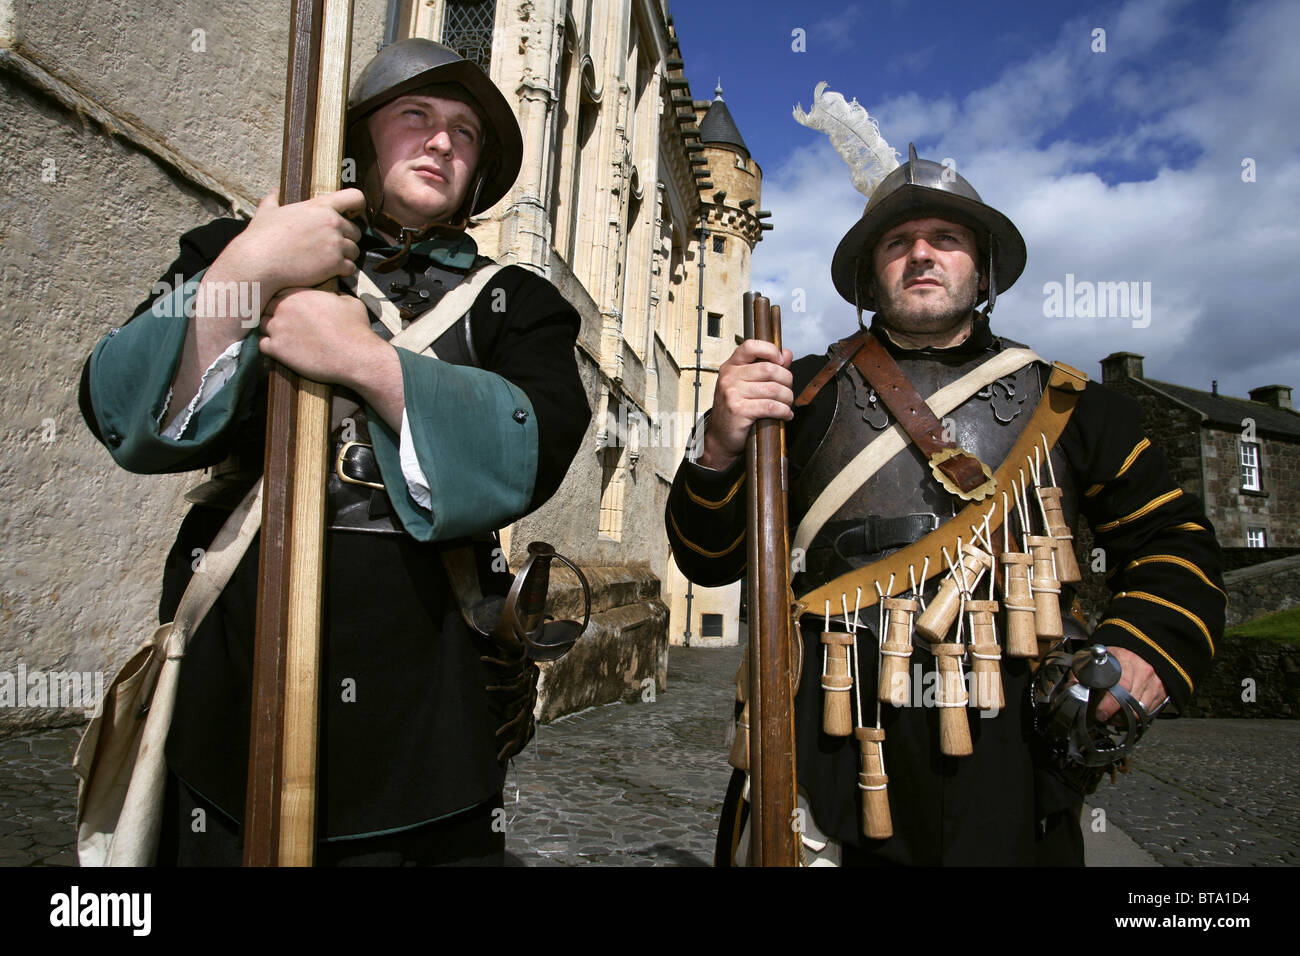 Oliver Cromwell Soldiers / Musketeers, Stirling Castle, Stirling, Scotland Stock Photo